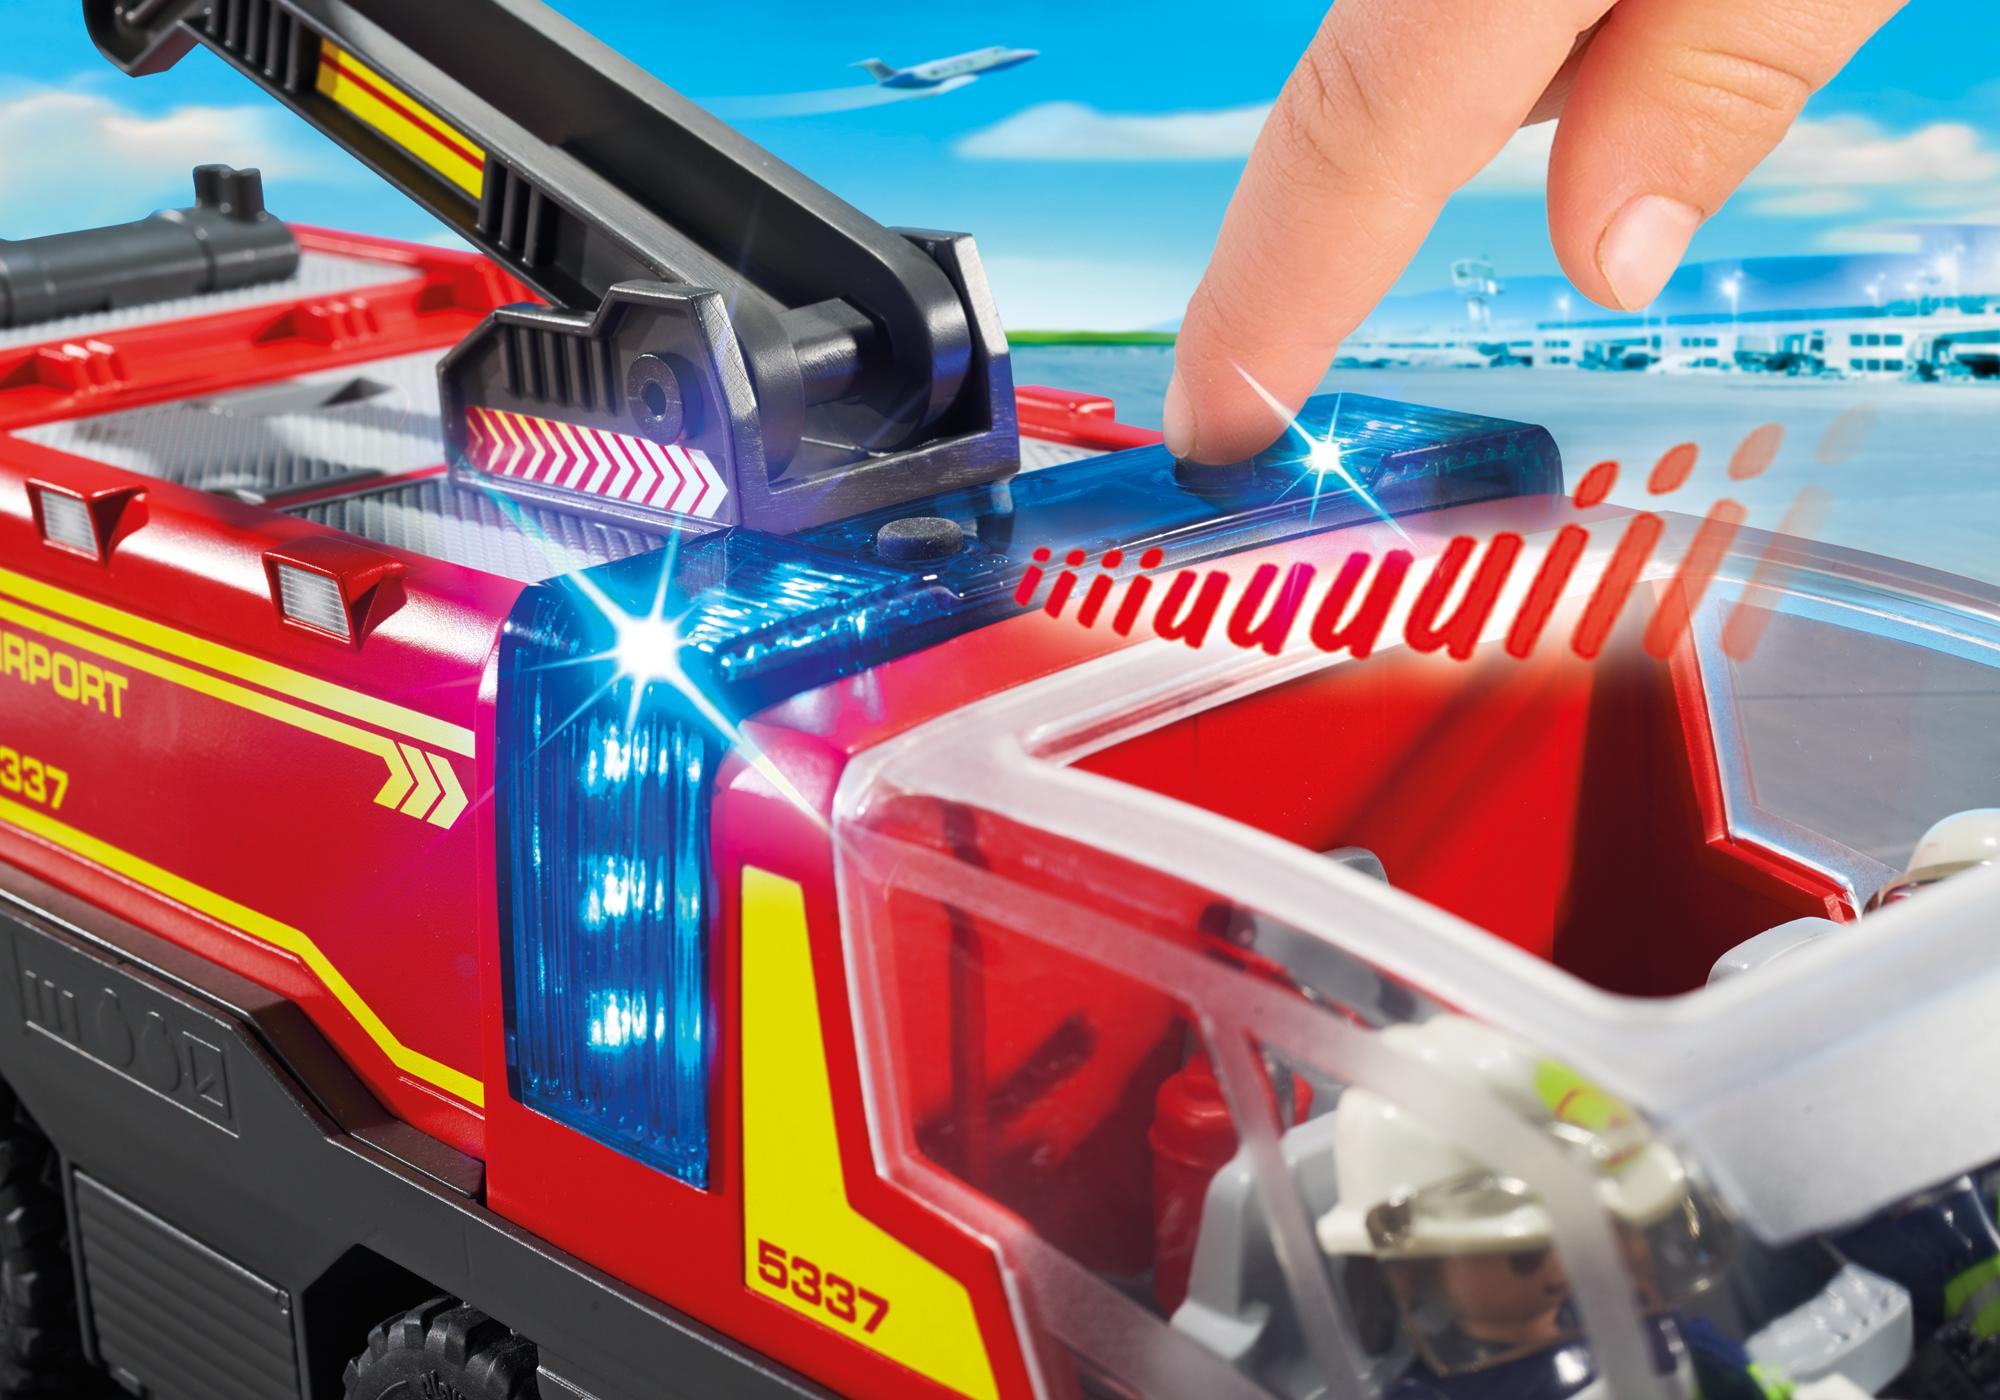 http://media.playmobil.com/i/playmobil/5337_product_extra1/Airport Fire Engine with Lights and Sound